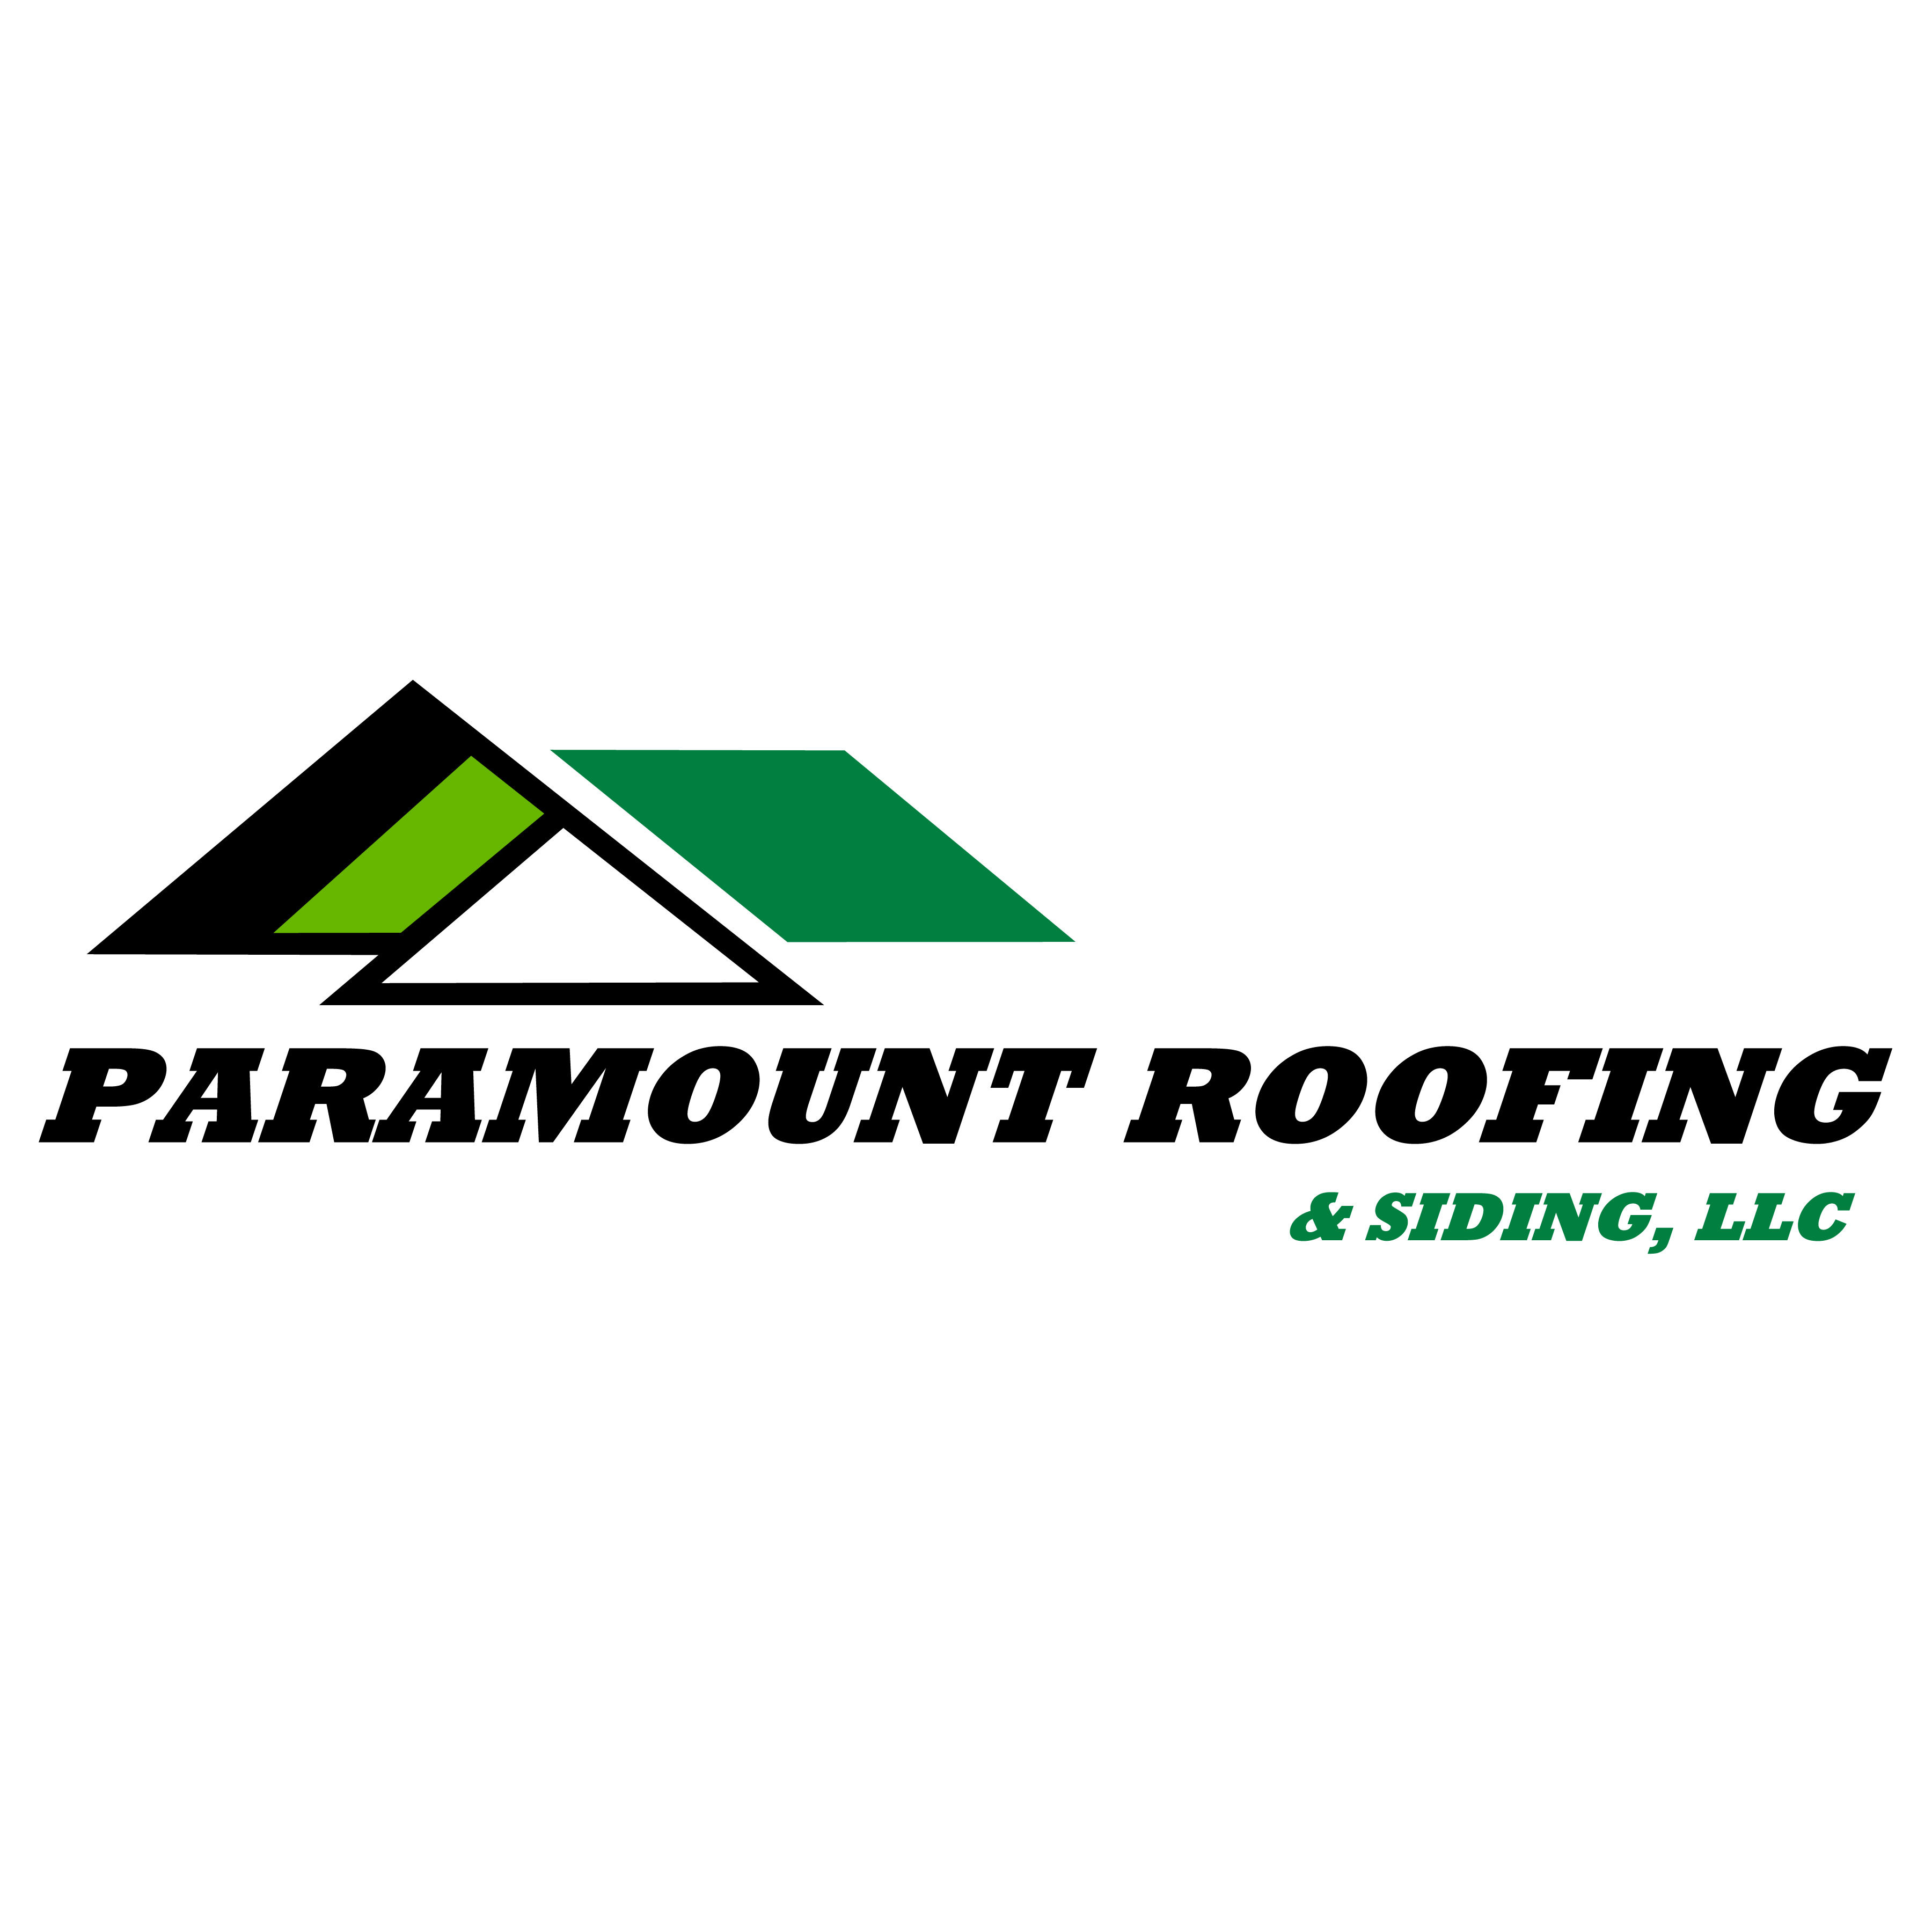 Paramount Roofing and Siding, LLC image 20